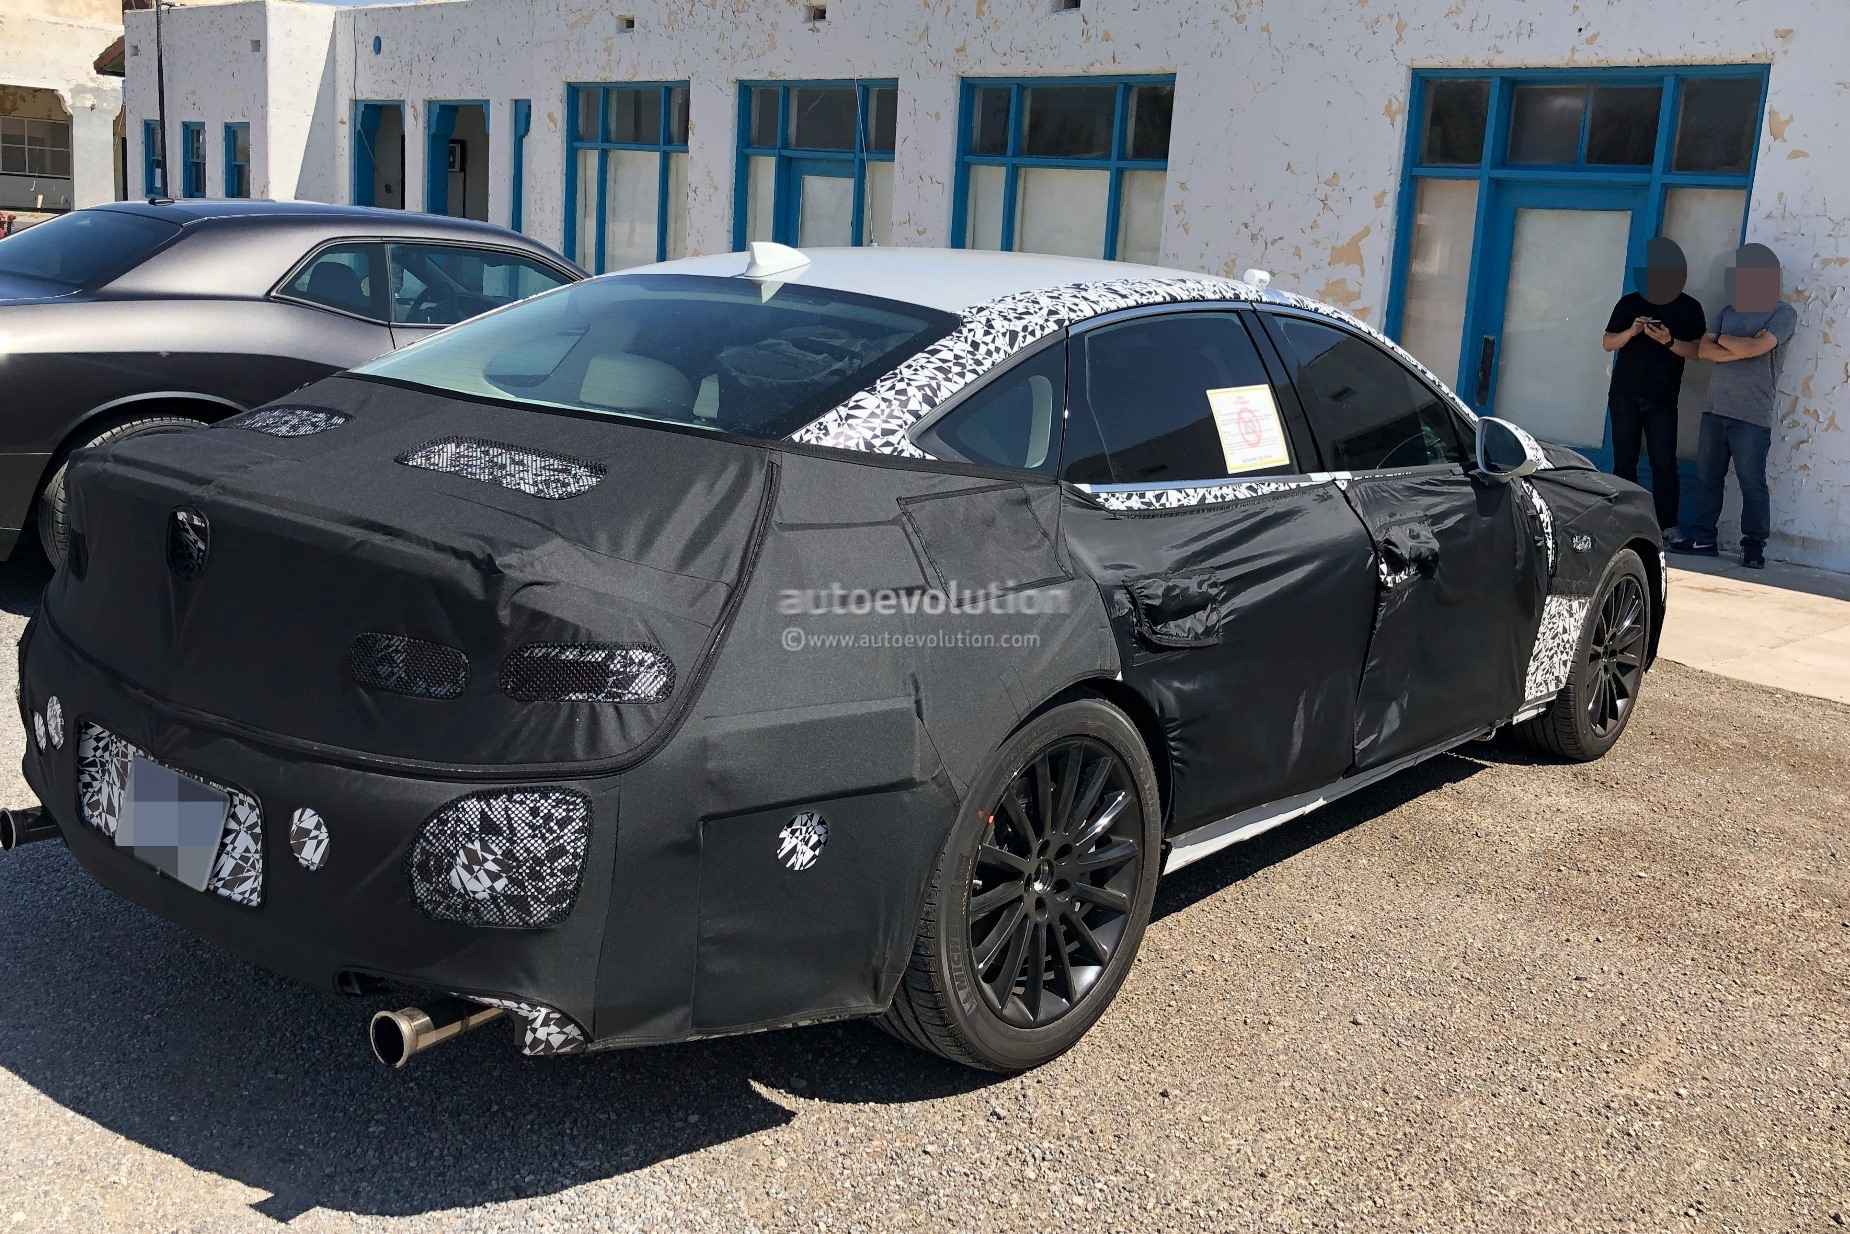 2020 Genesis G80 Spied With G70-inspired Front Grille ...